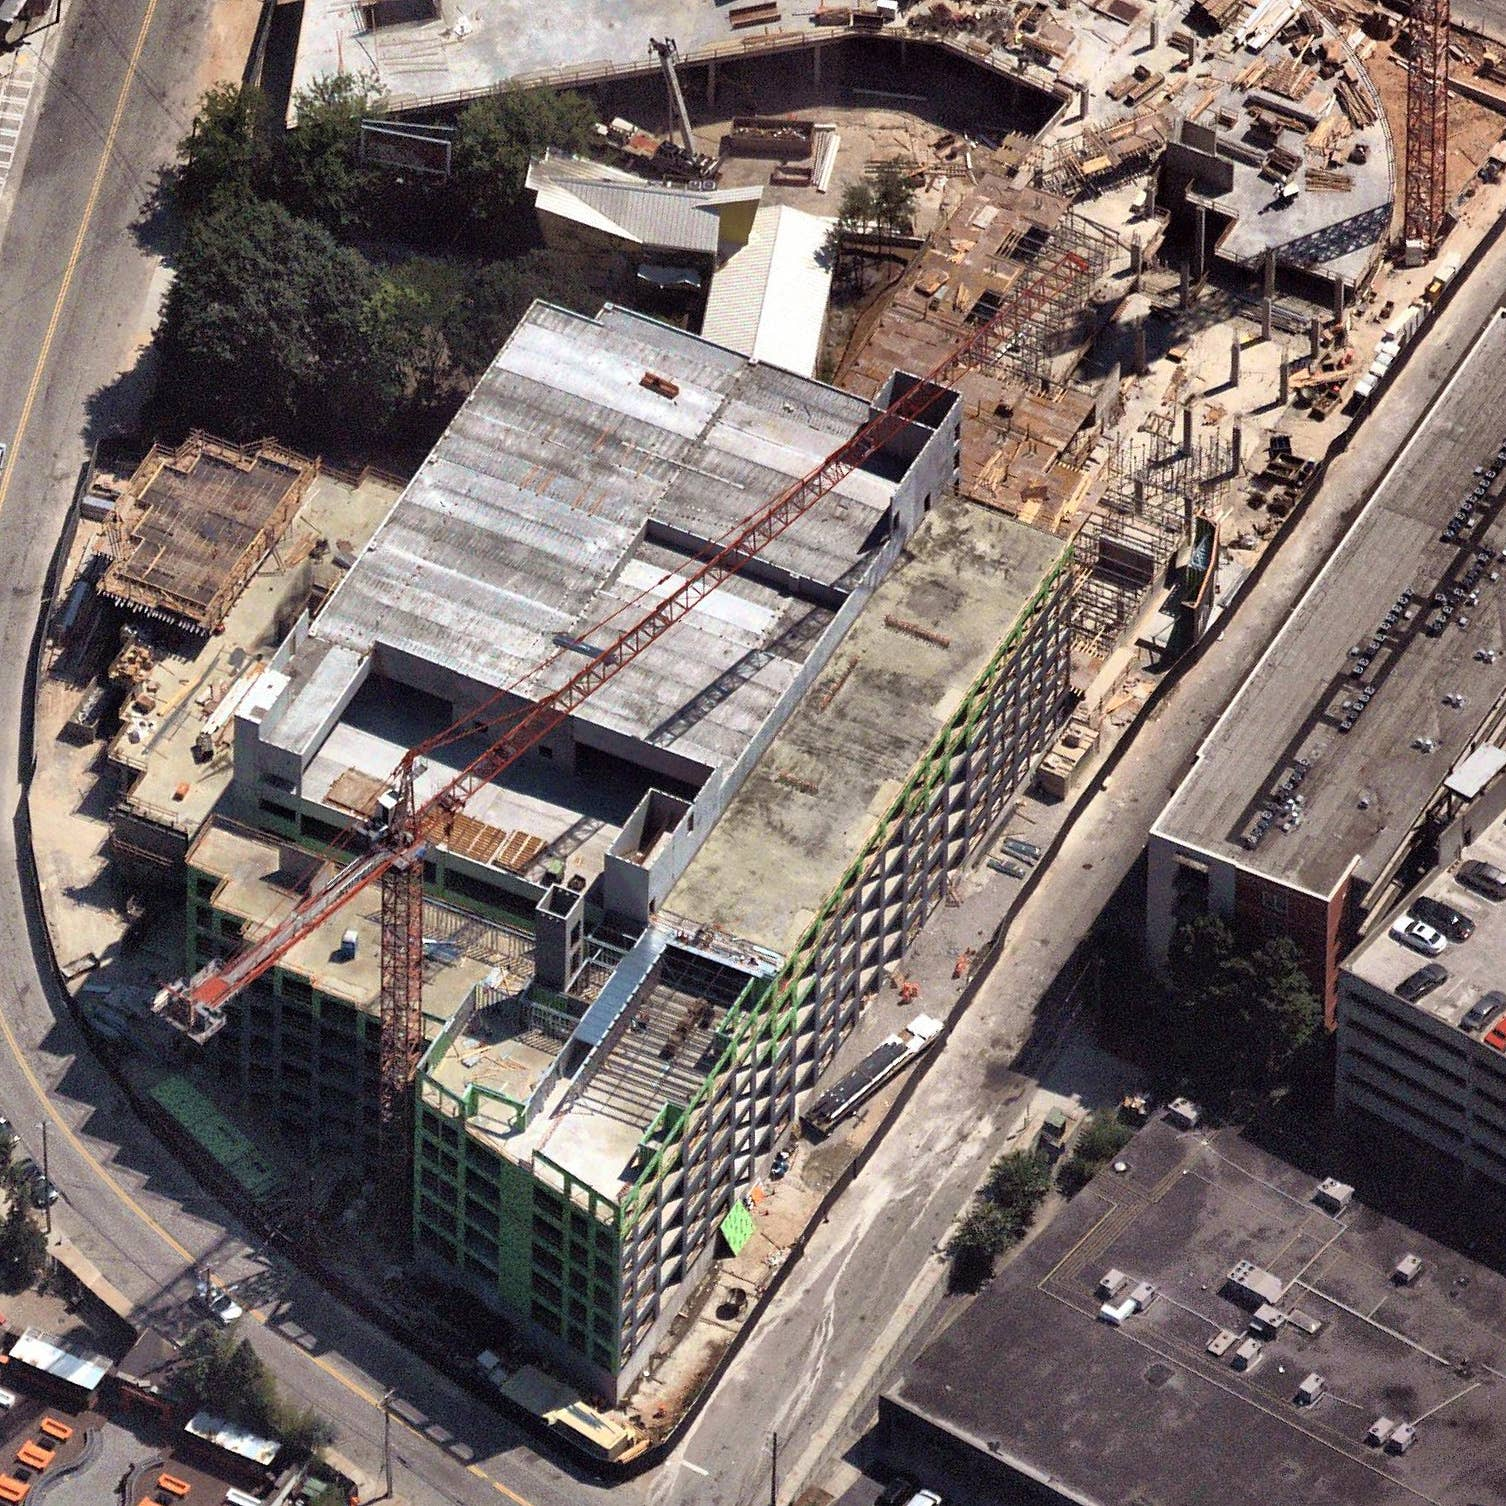 High-def oblique aerial view of commercial construction site in Atlanta, GA - 26 May 2019